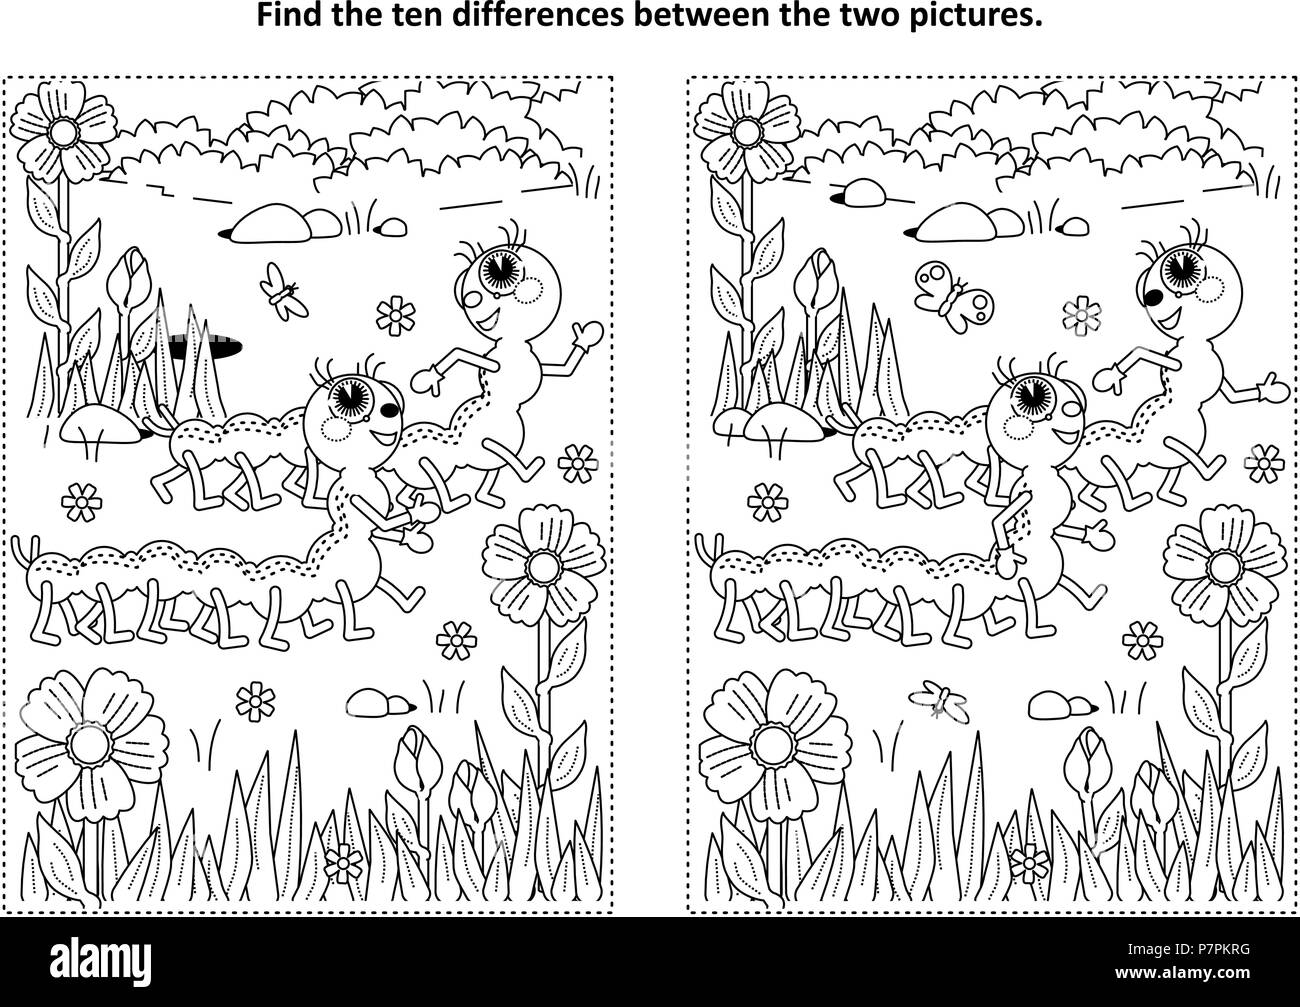 Spring Or Summer Themed Find The Ten Differences Picture Puzzle And Coloring Page With Two Cute Caterpillars Walking In Garden